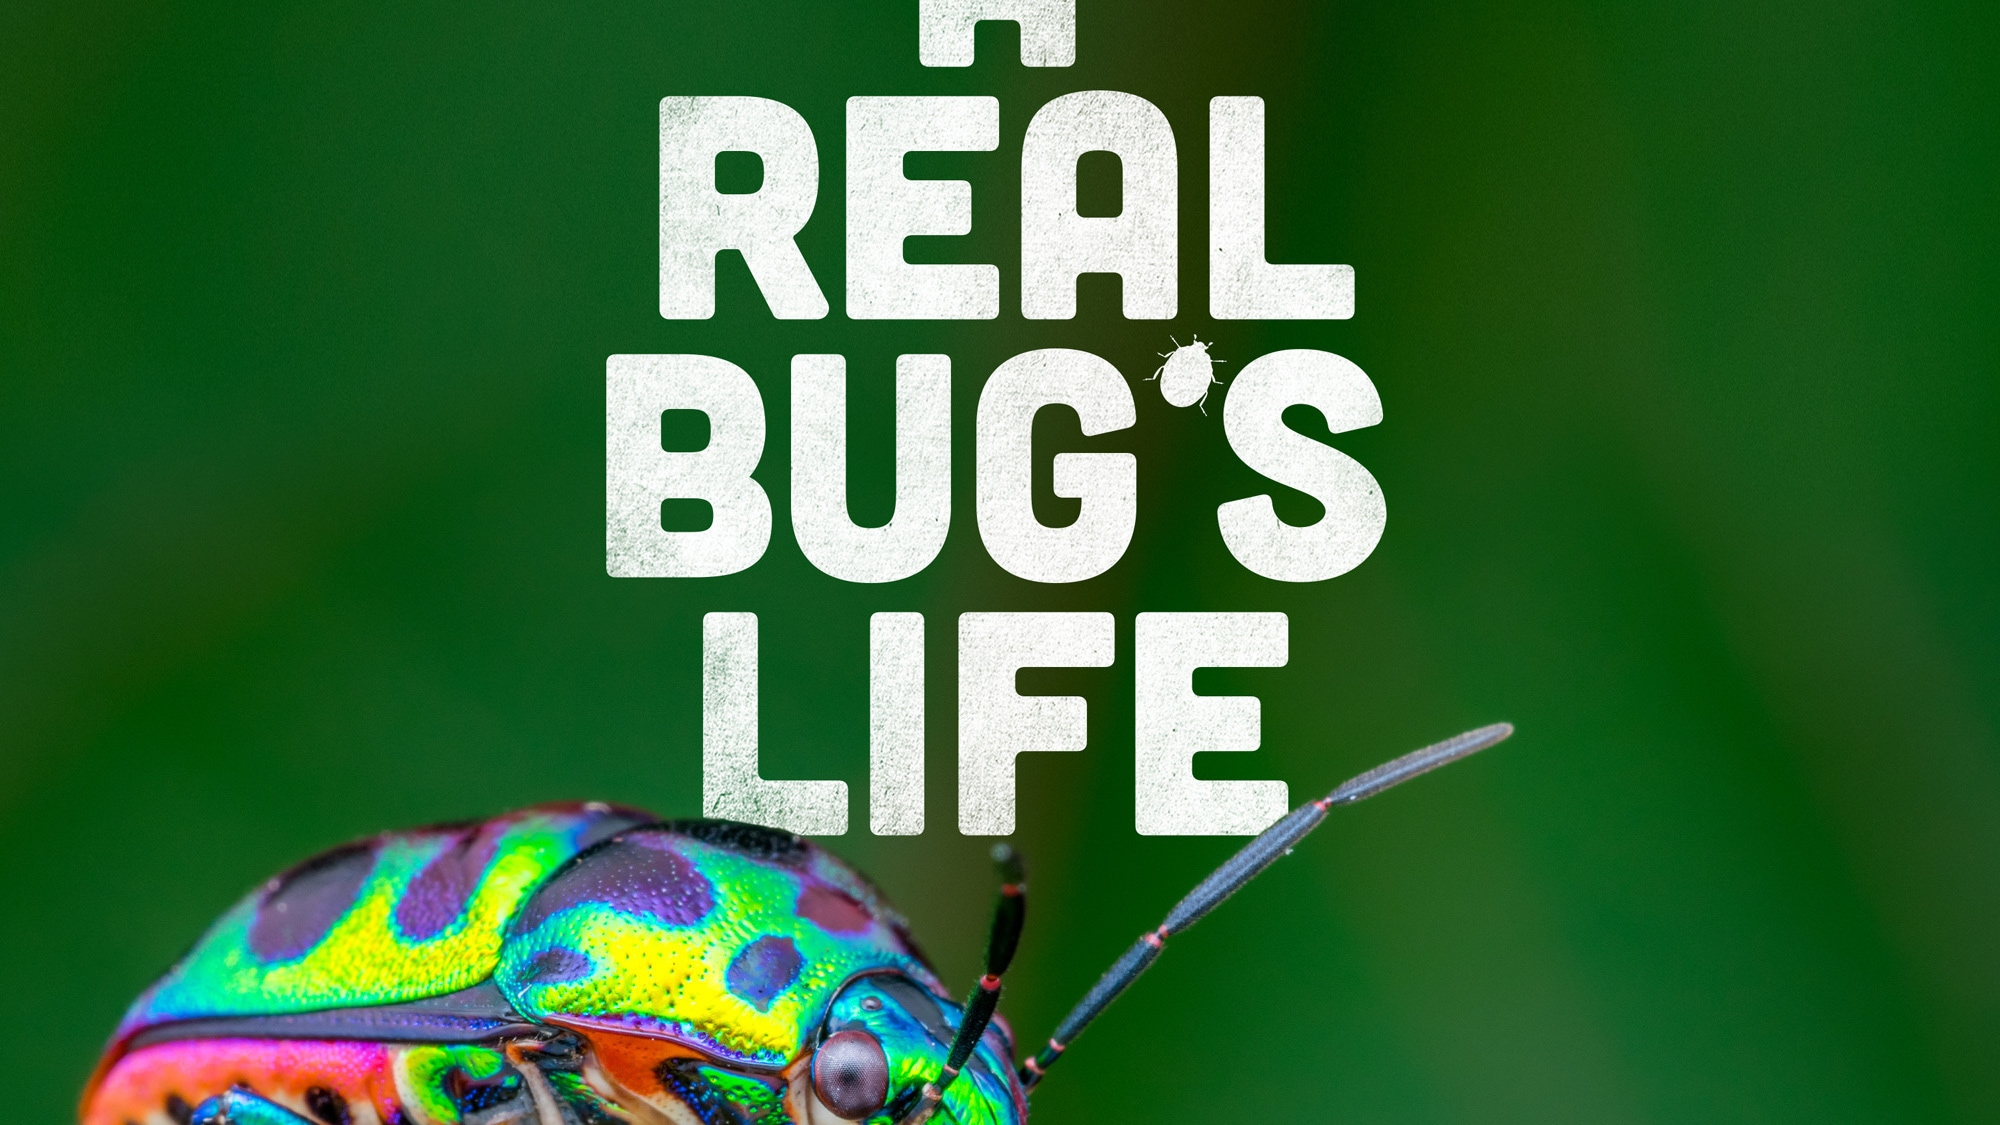 A REAL BUG'S LIFE - In ten spellbinding episodes, A REAL BUG'S LIFE uses advancements in miniaturized technology to take you on adventures into tiny worlds beyond your imagination and show you what life is like on planet Earth from a bug's eye view.   (National Geographic)